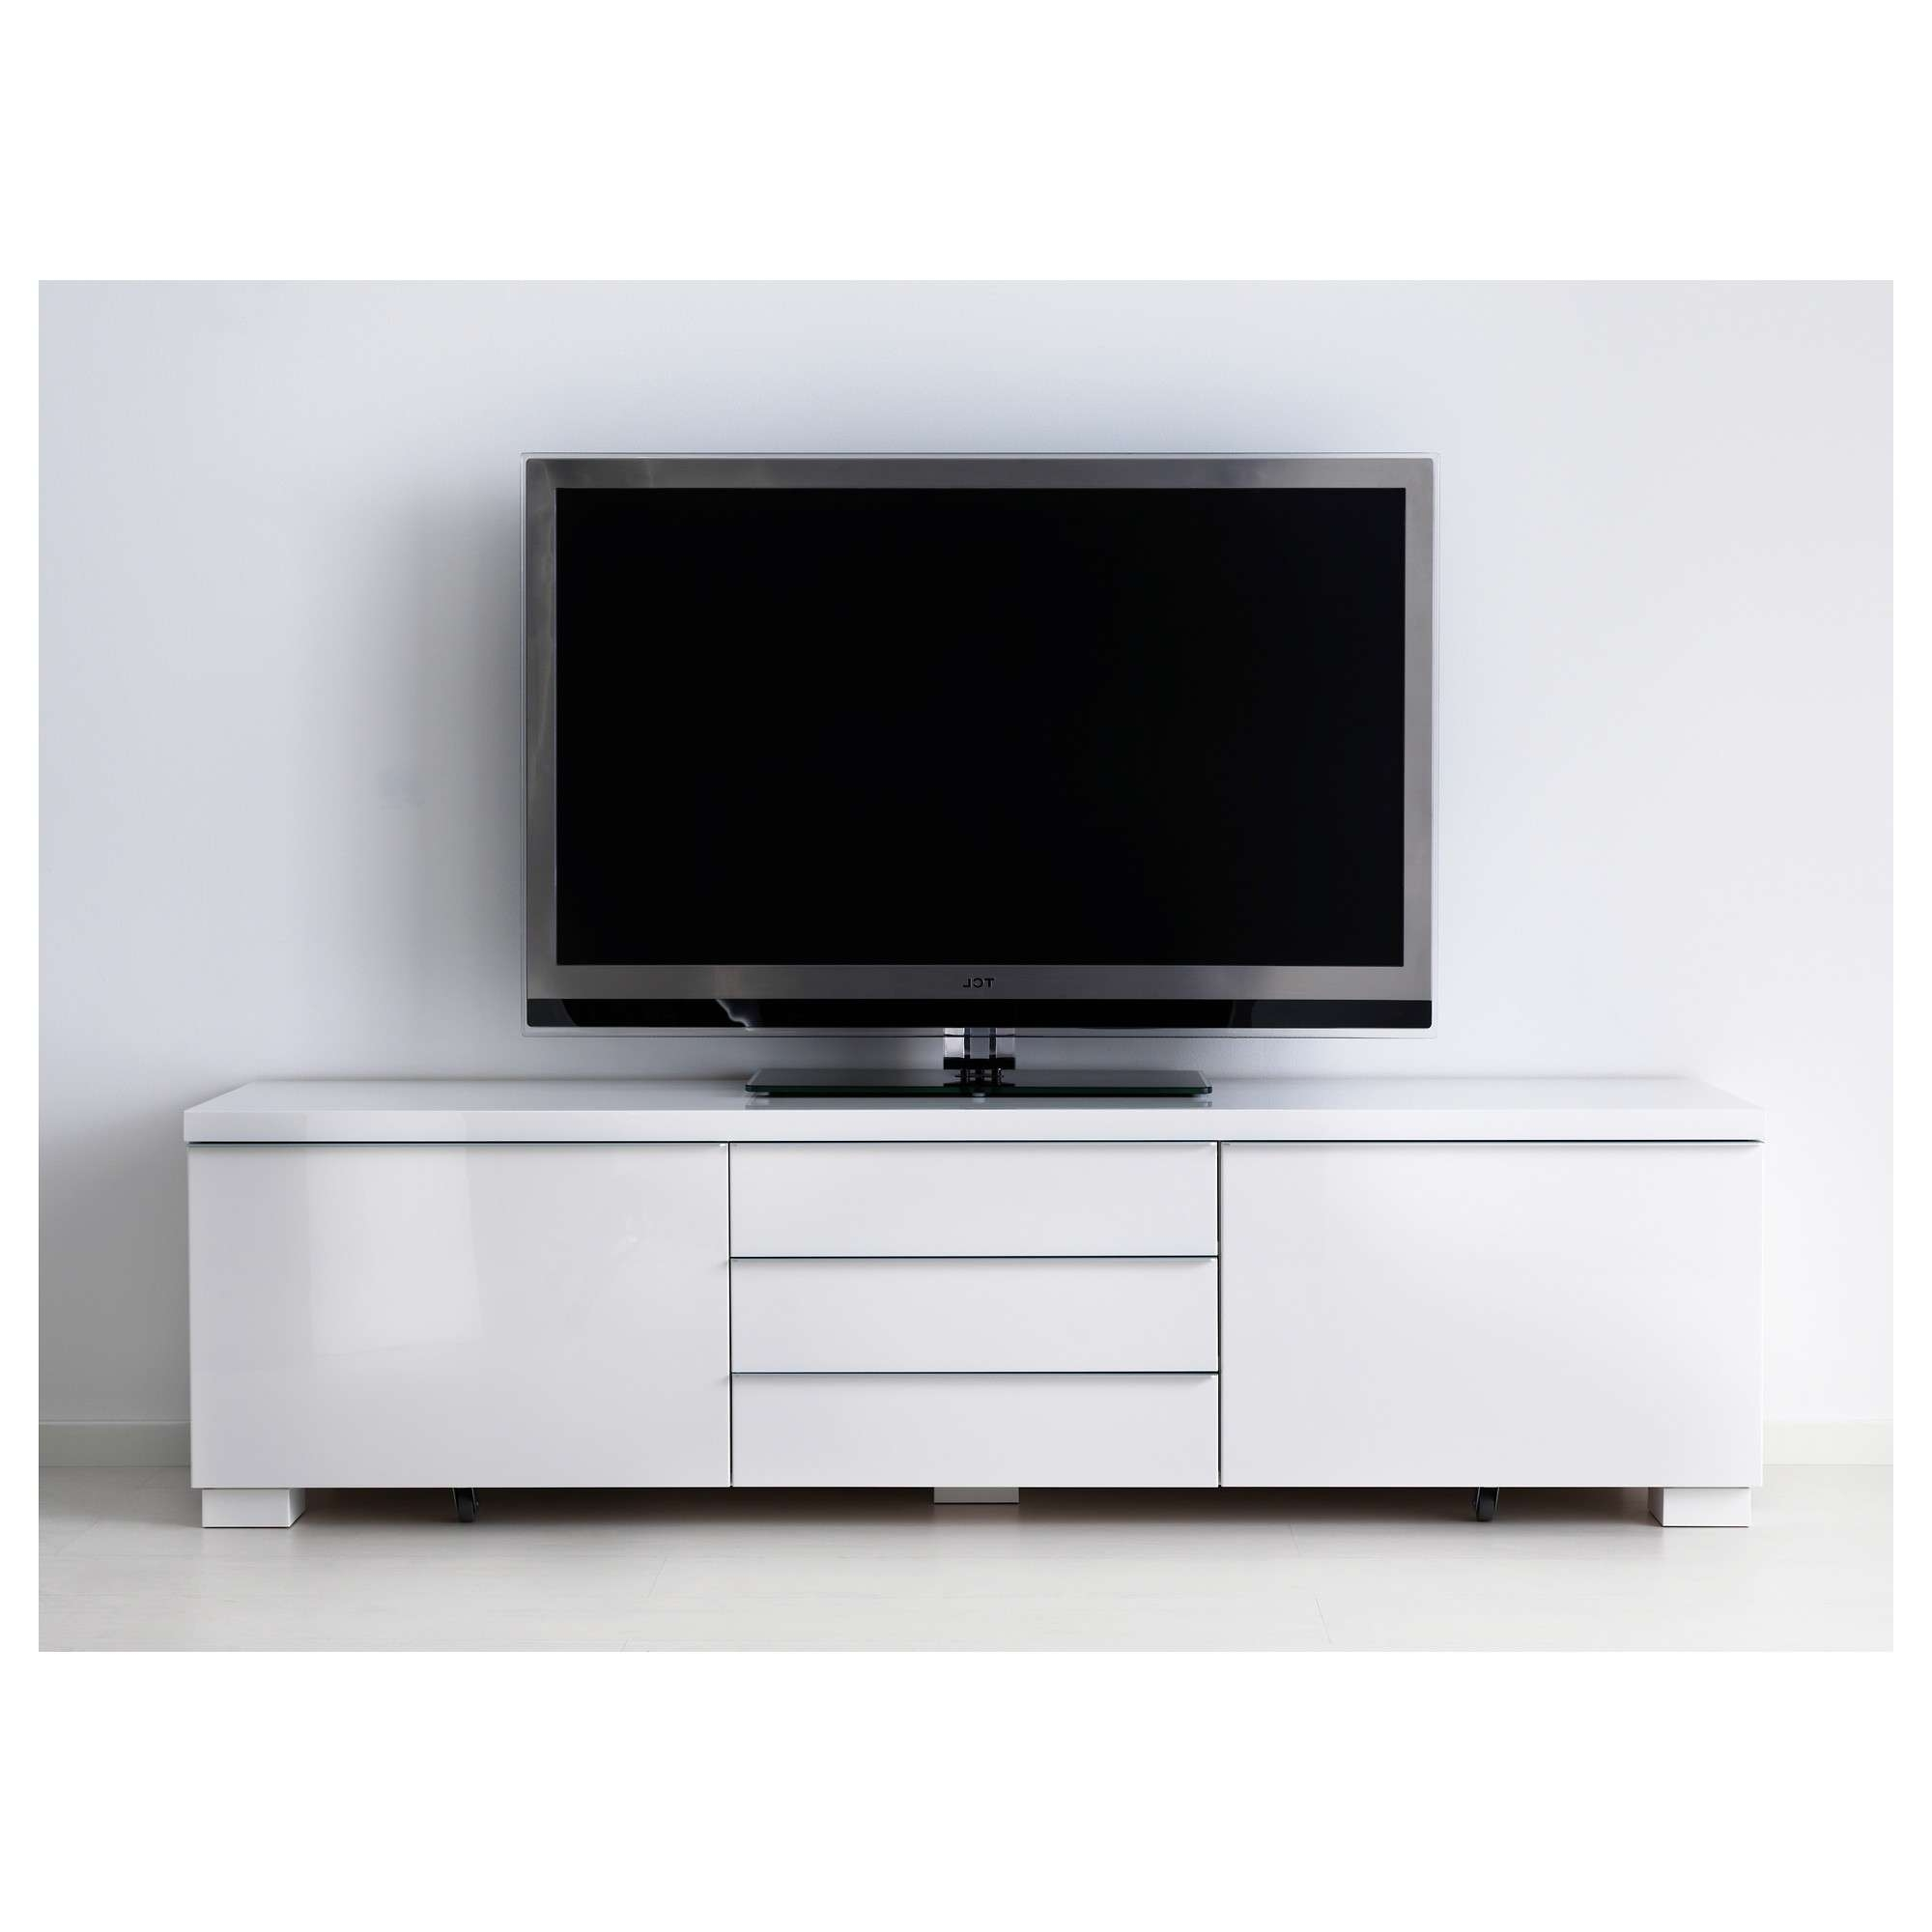 Bestå Burs Tv Bench High Gloss White 180x41 Cm – Ikea With Regard To High Gloss Tv Cabinets (View 3 of 20)